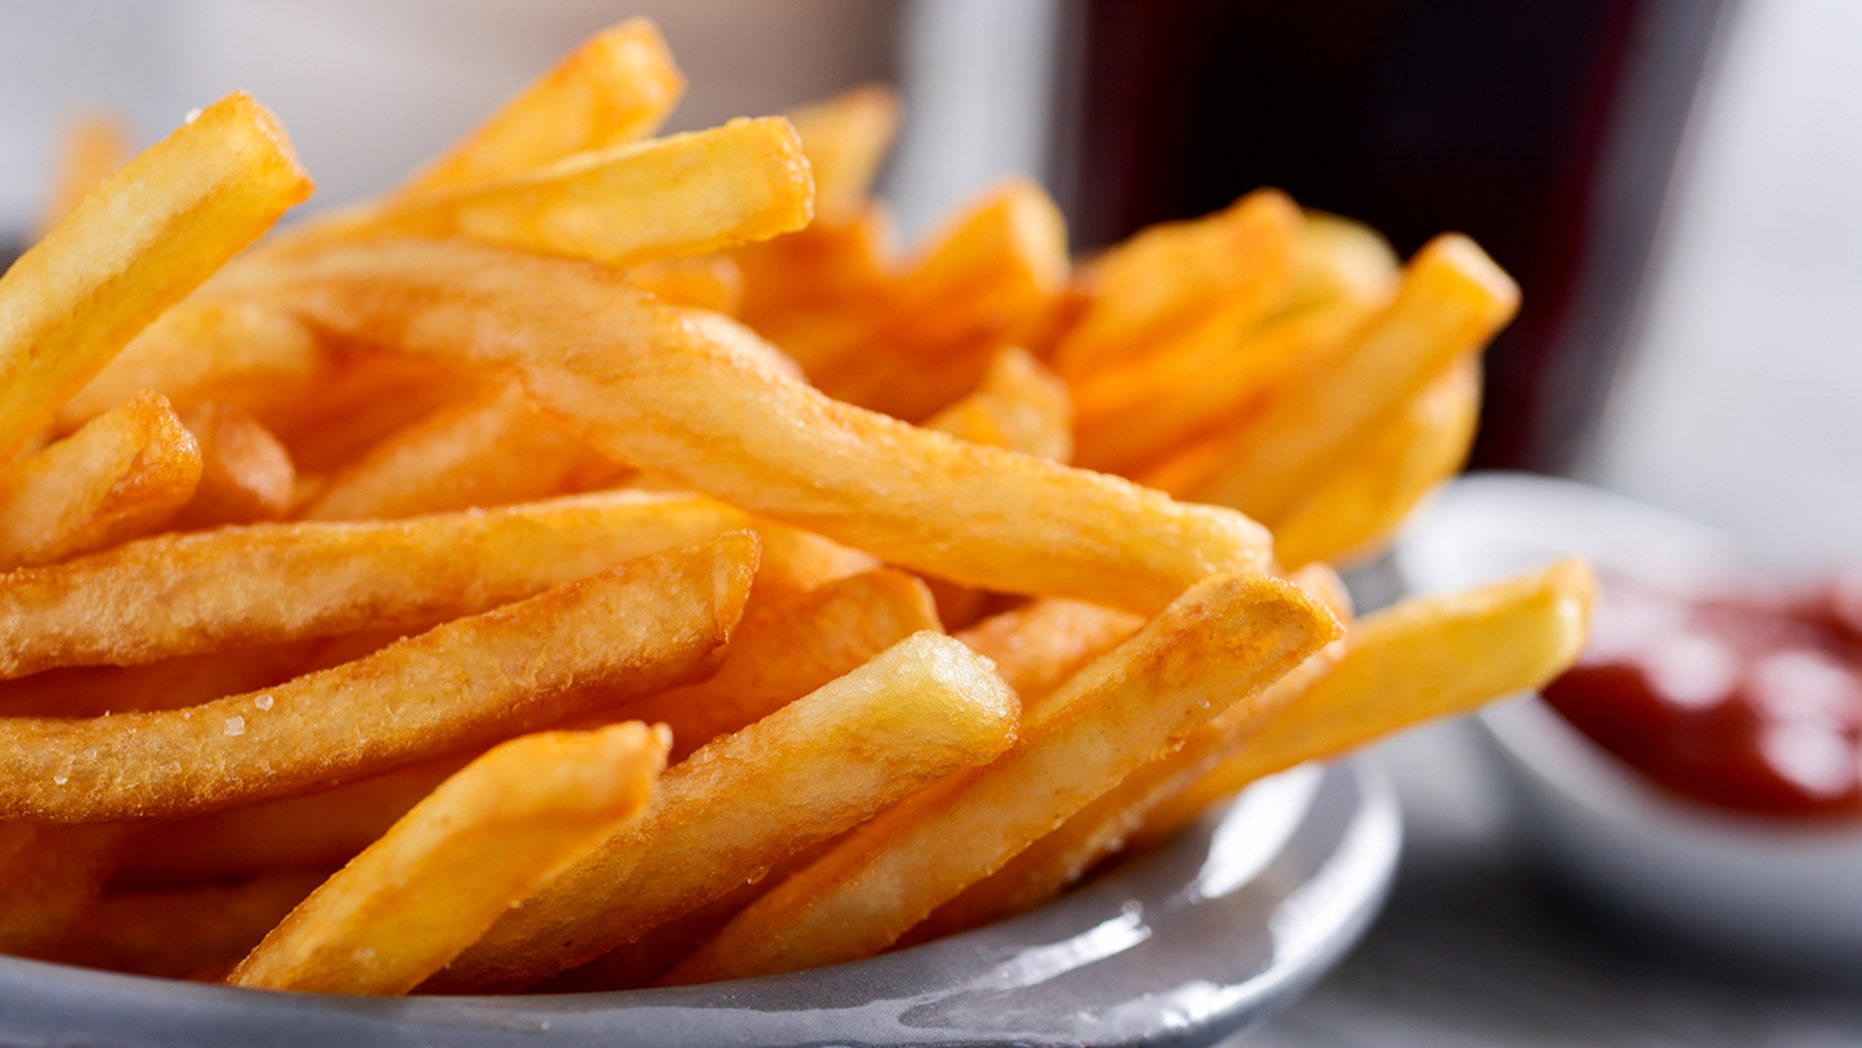 Skip the microwave and try Taste of Home's tried and true method for reheating fries. Just pick up some Mayochup, first.